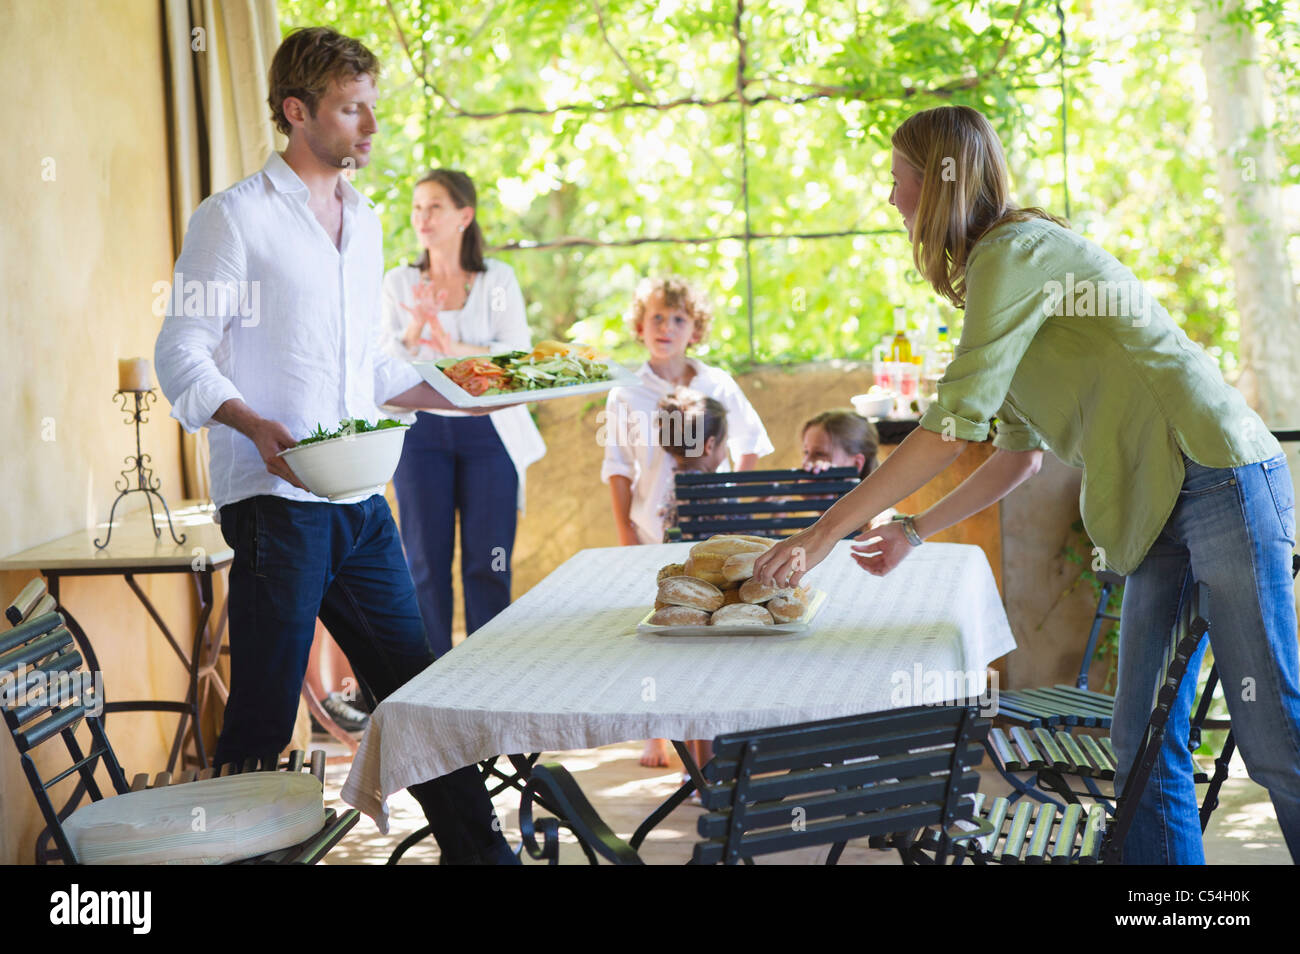 Couple arranging food on dining table with family in the background Stock Photo